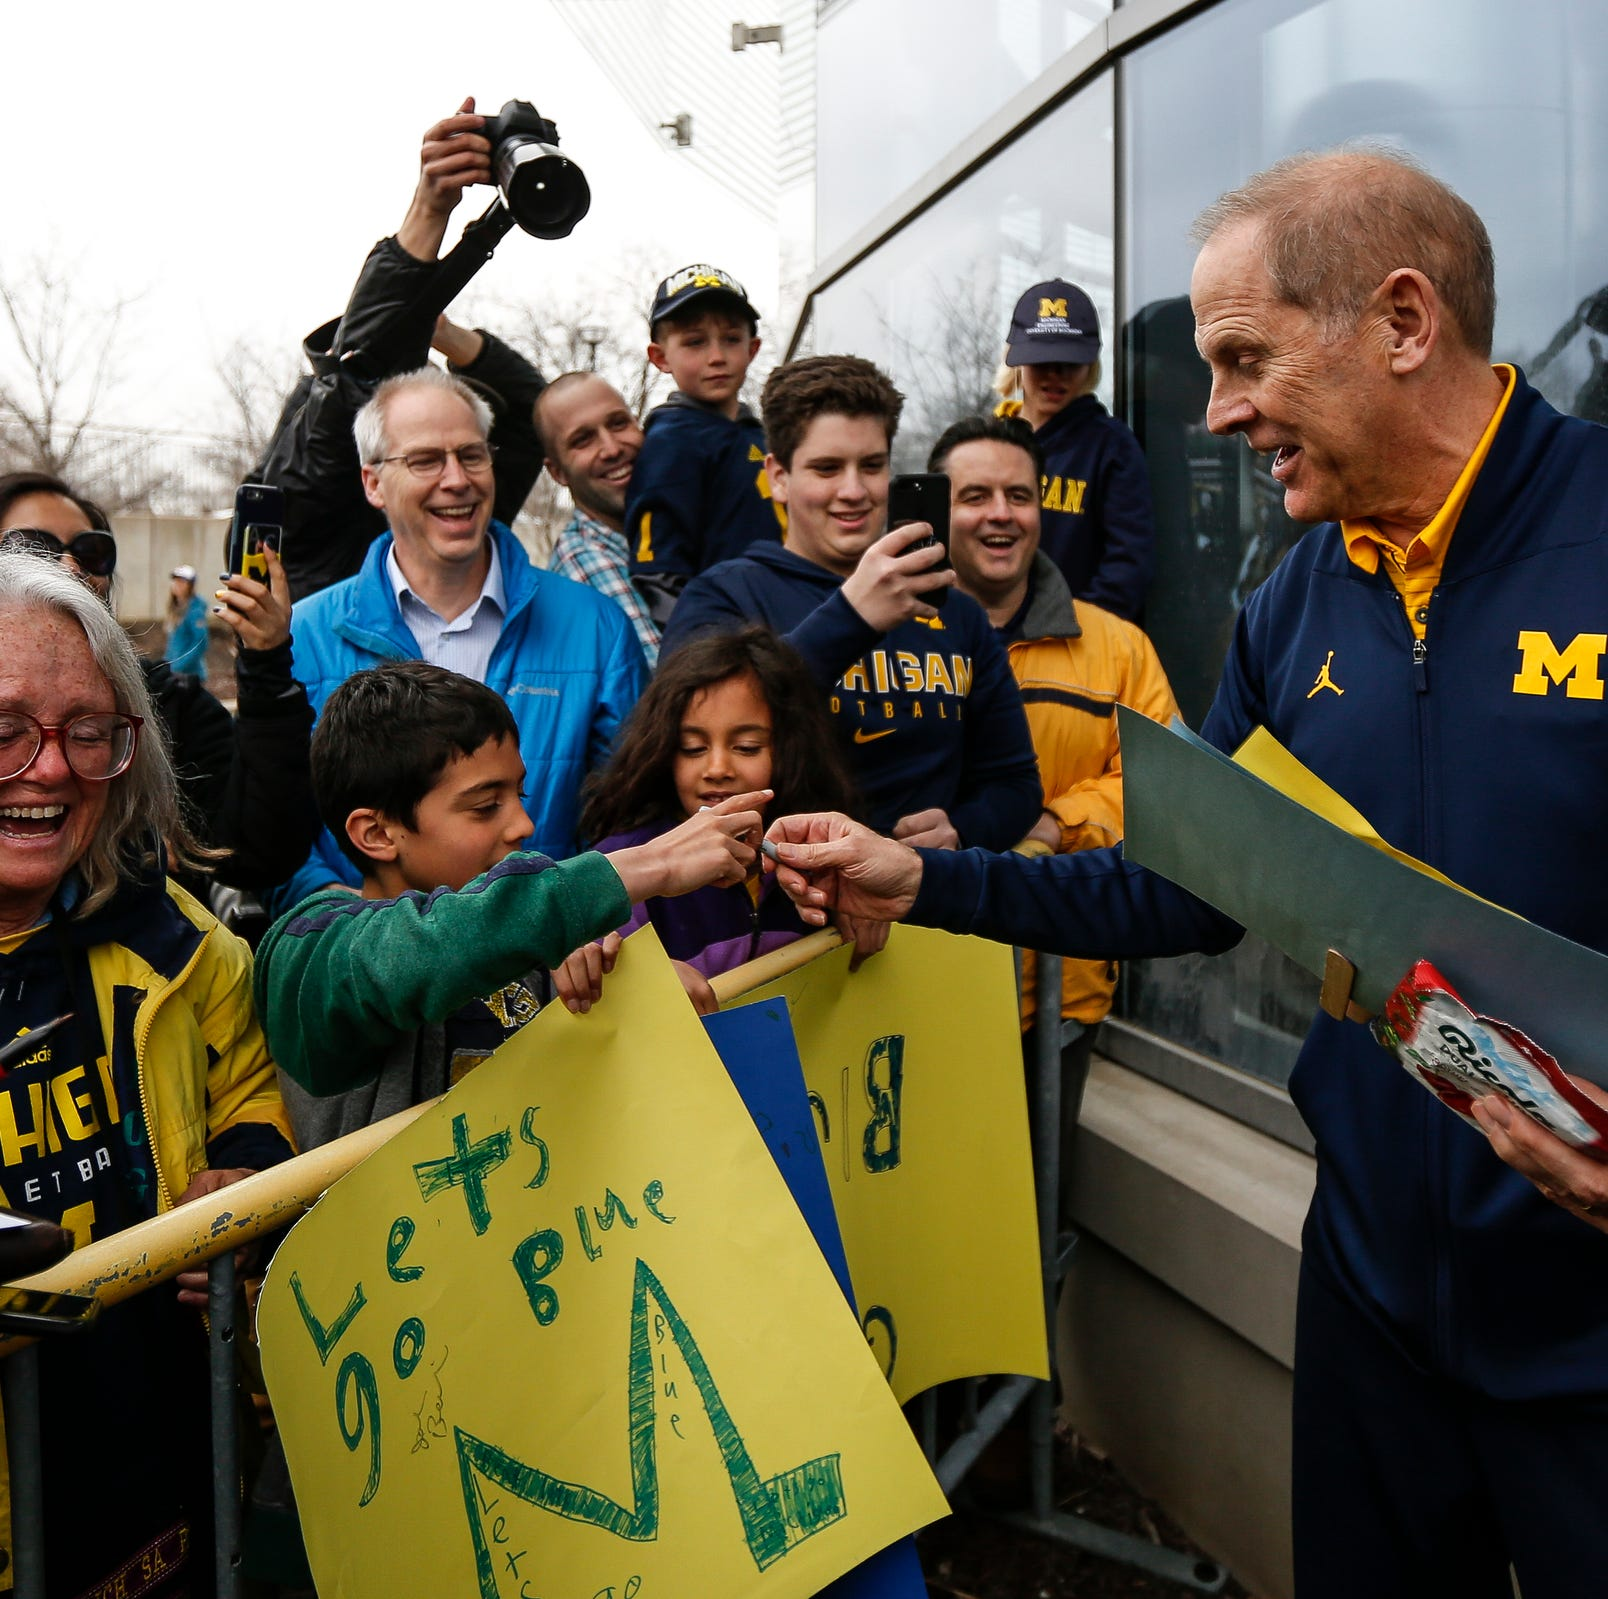 Michigan basketball fans melt down after John Beilein departs: 'Punch me in the face'